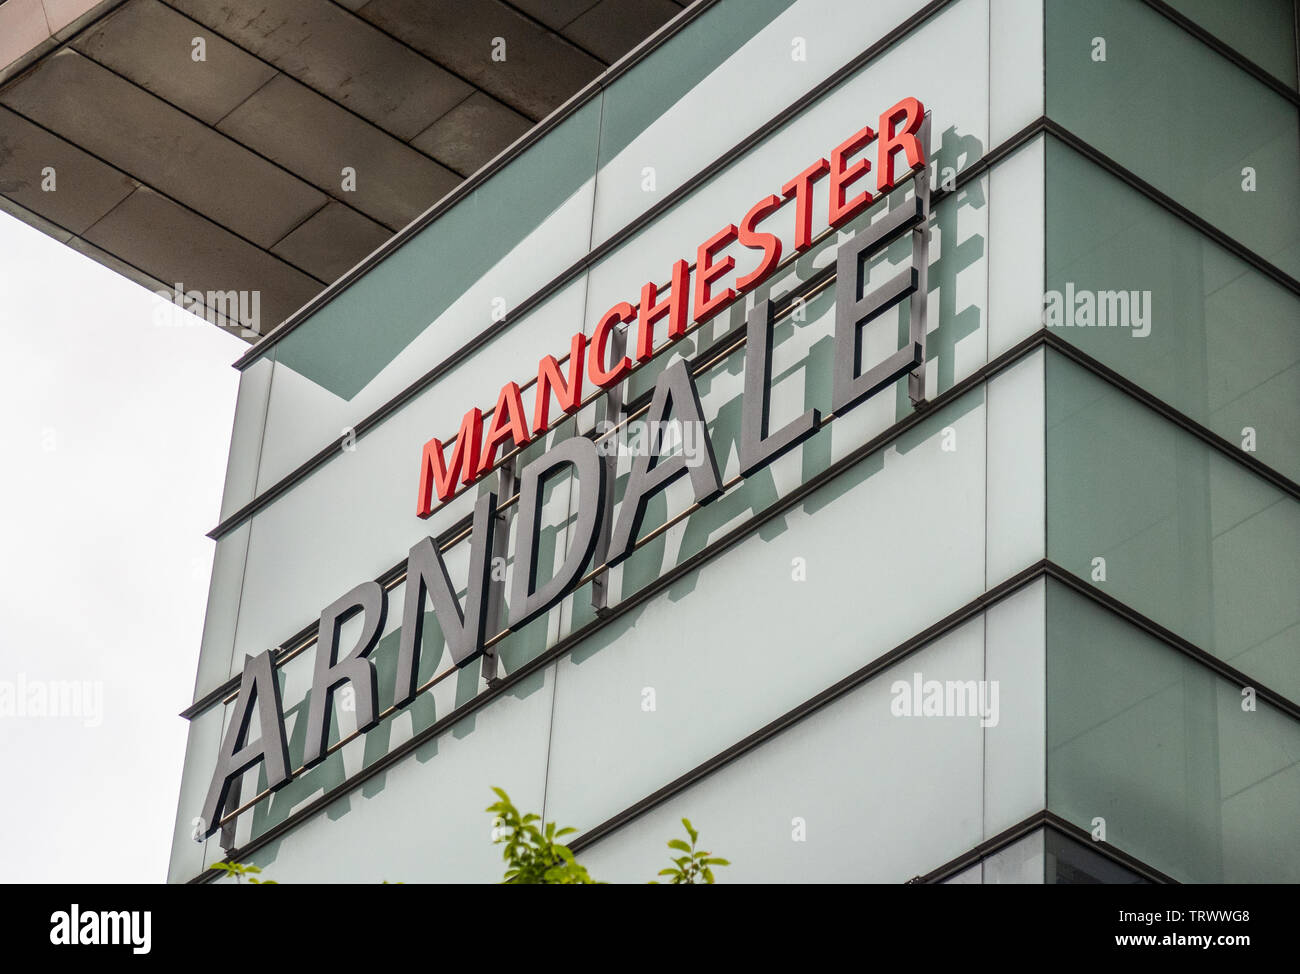 Manchester Arndale Shopping Centre sign, England, UK - Stock Image